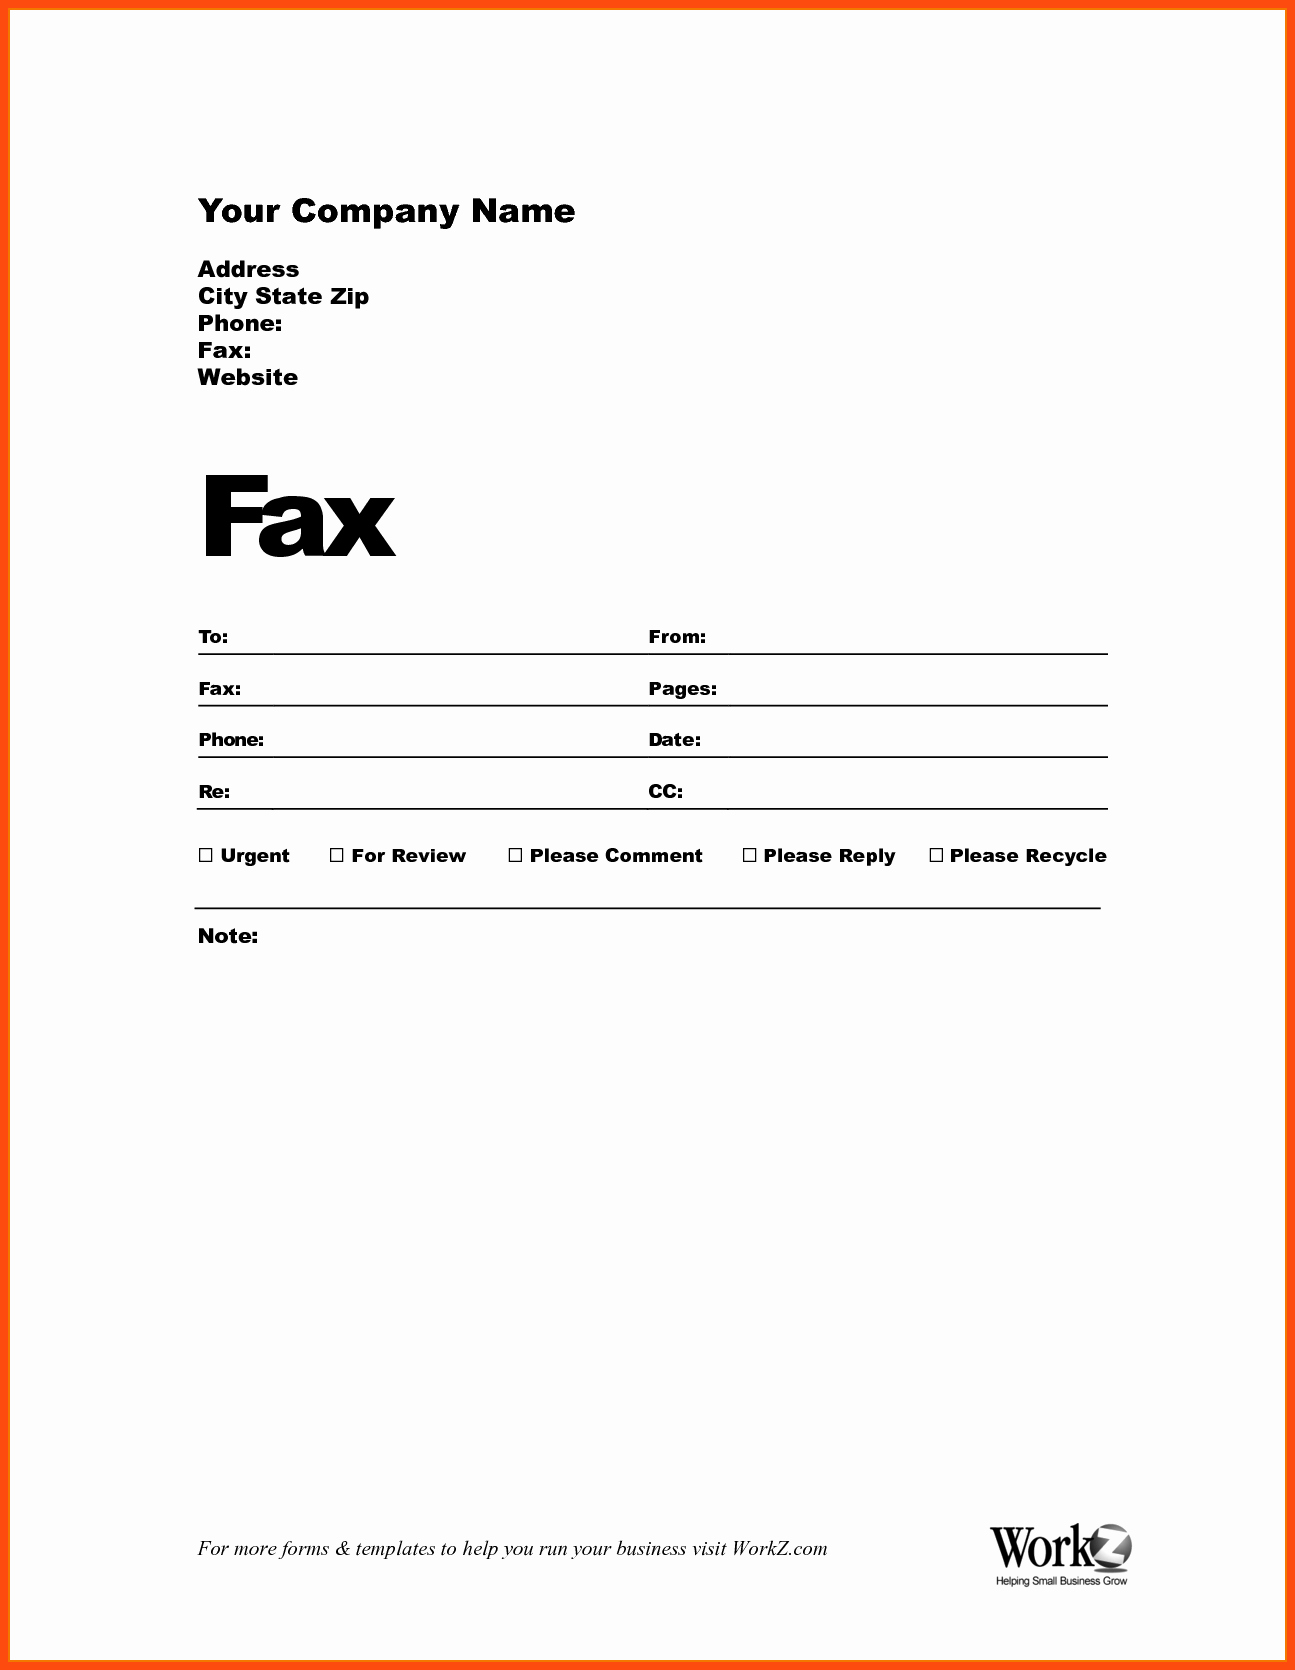 How to Fax Cover Sheet Fresh How to Fill Out A Fax Cover Sheet